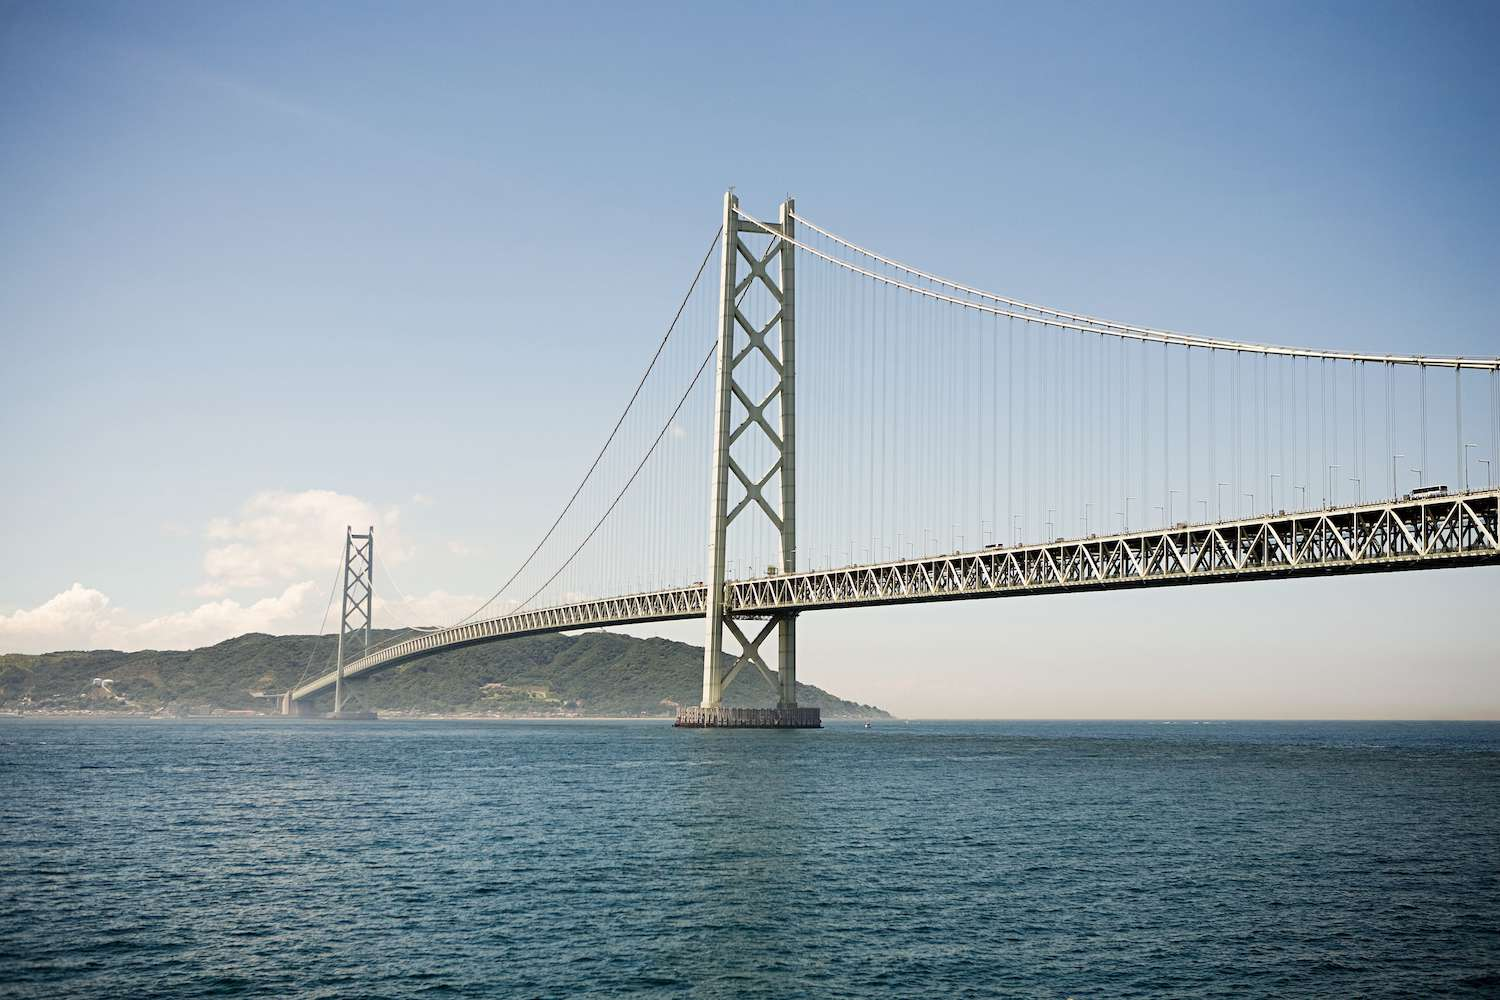 The Akashi Kaikyō Bridge over the blue waters of the Akashi Strait on a clear day